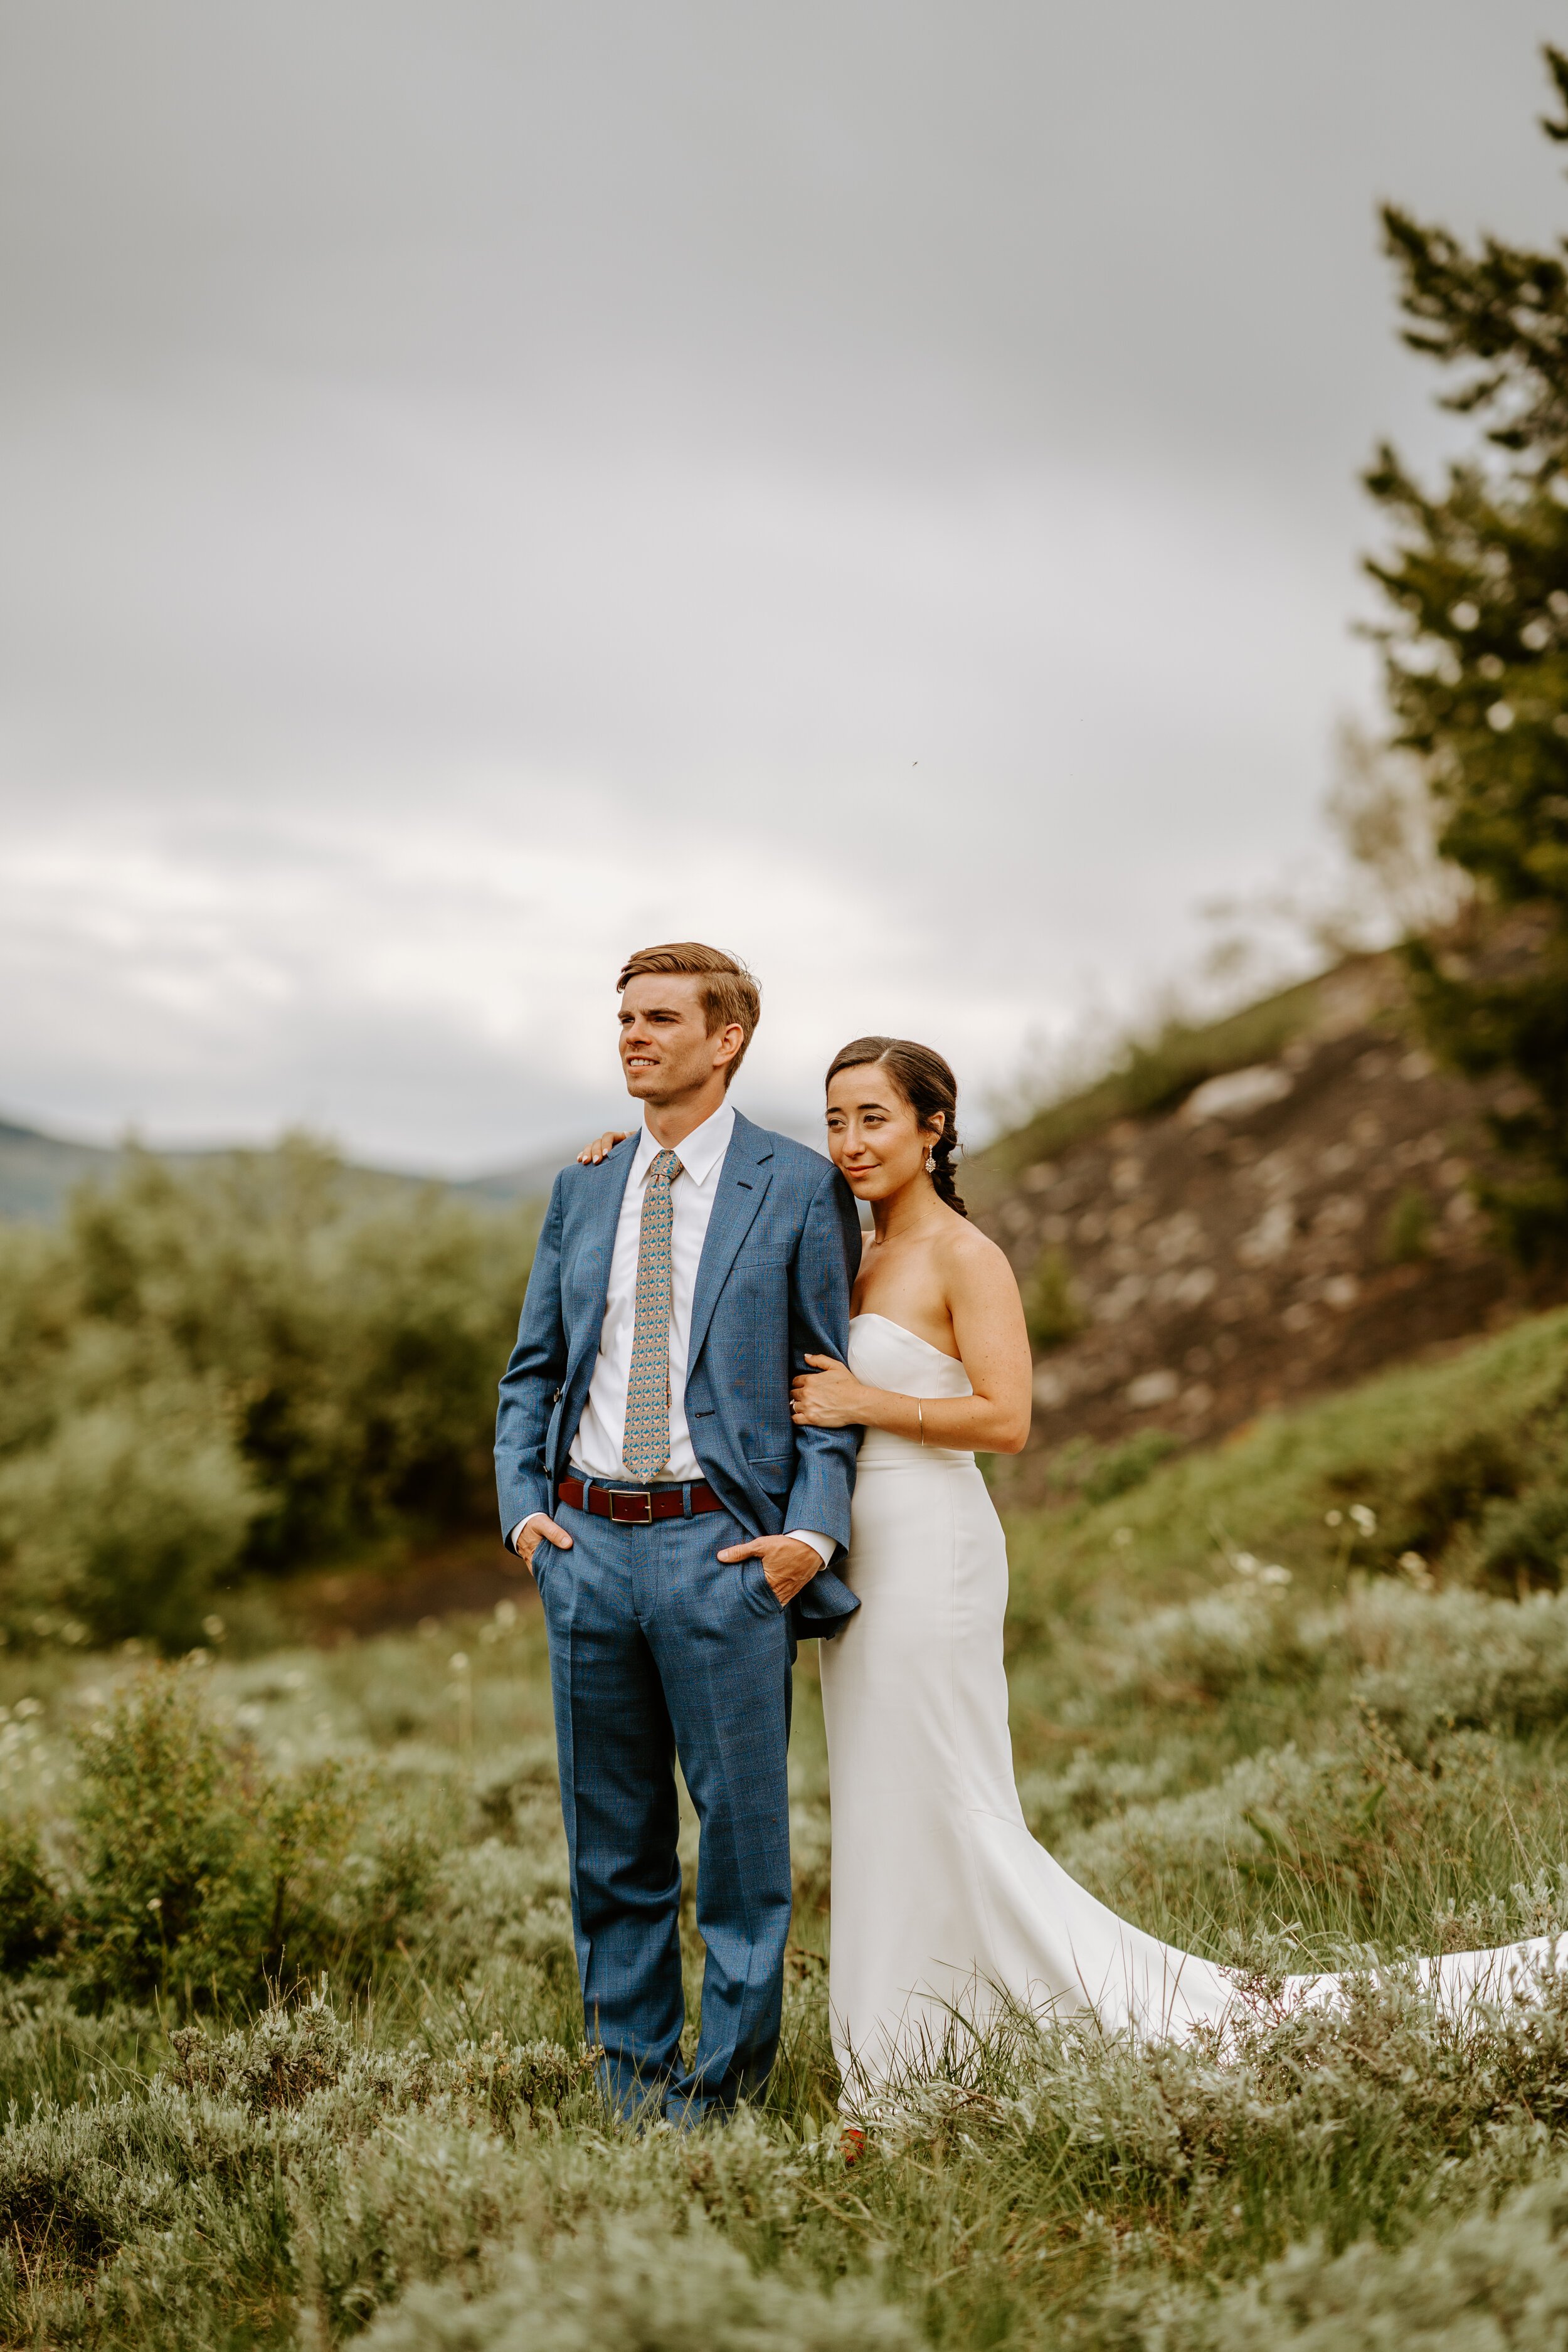 Crested Butte Wedding - Ariel & Mark-176.jpg